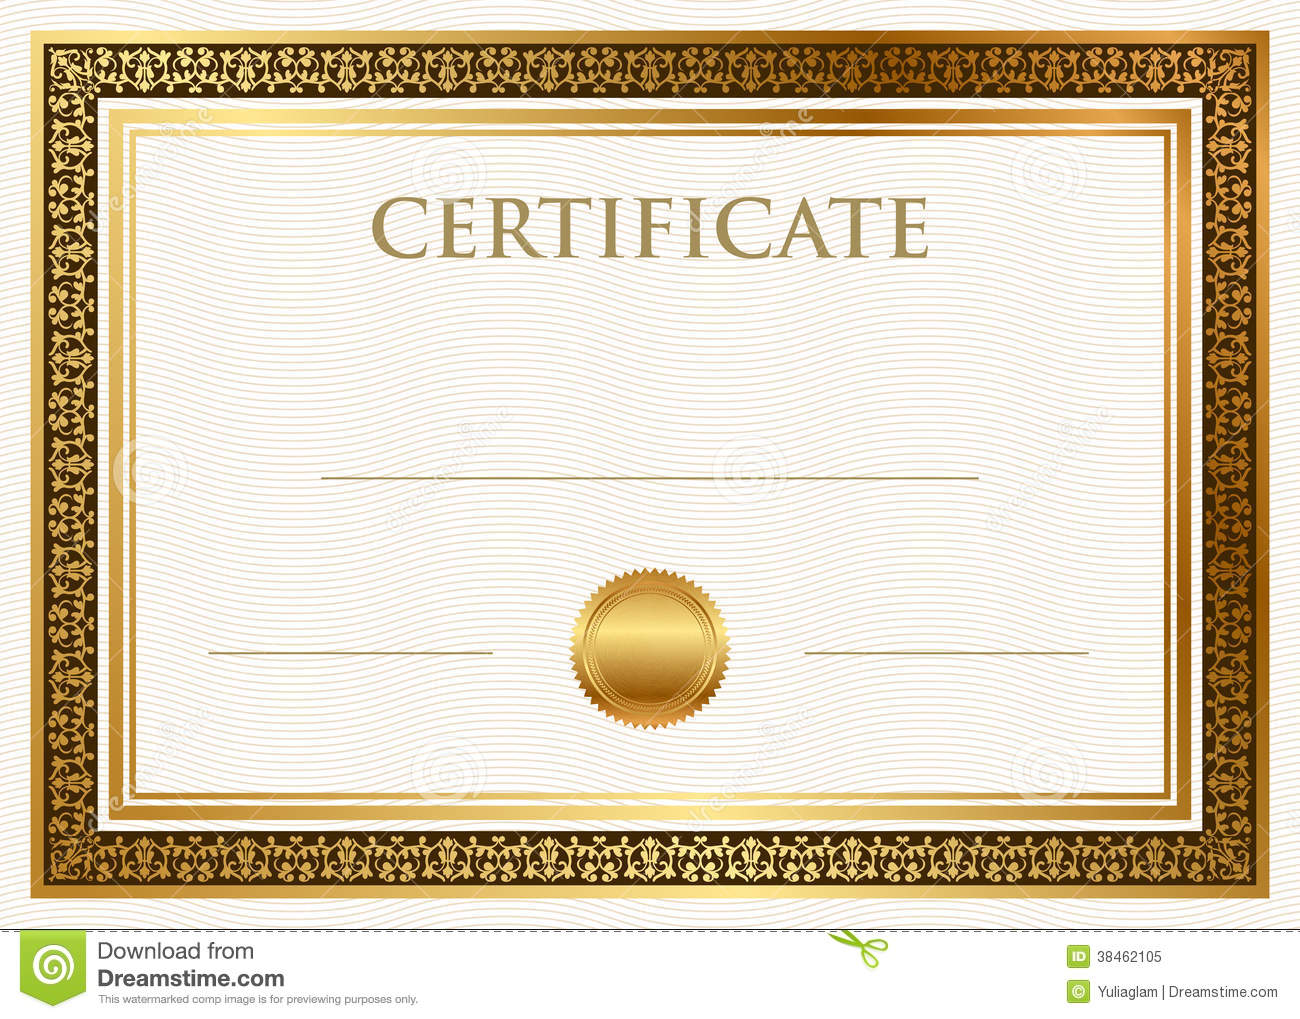 Certificate Of Achievement With Wax Seal  Certificates Of Achievement Free Templates